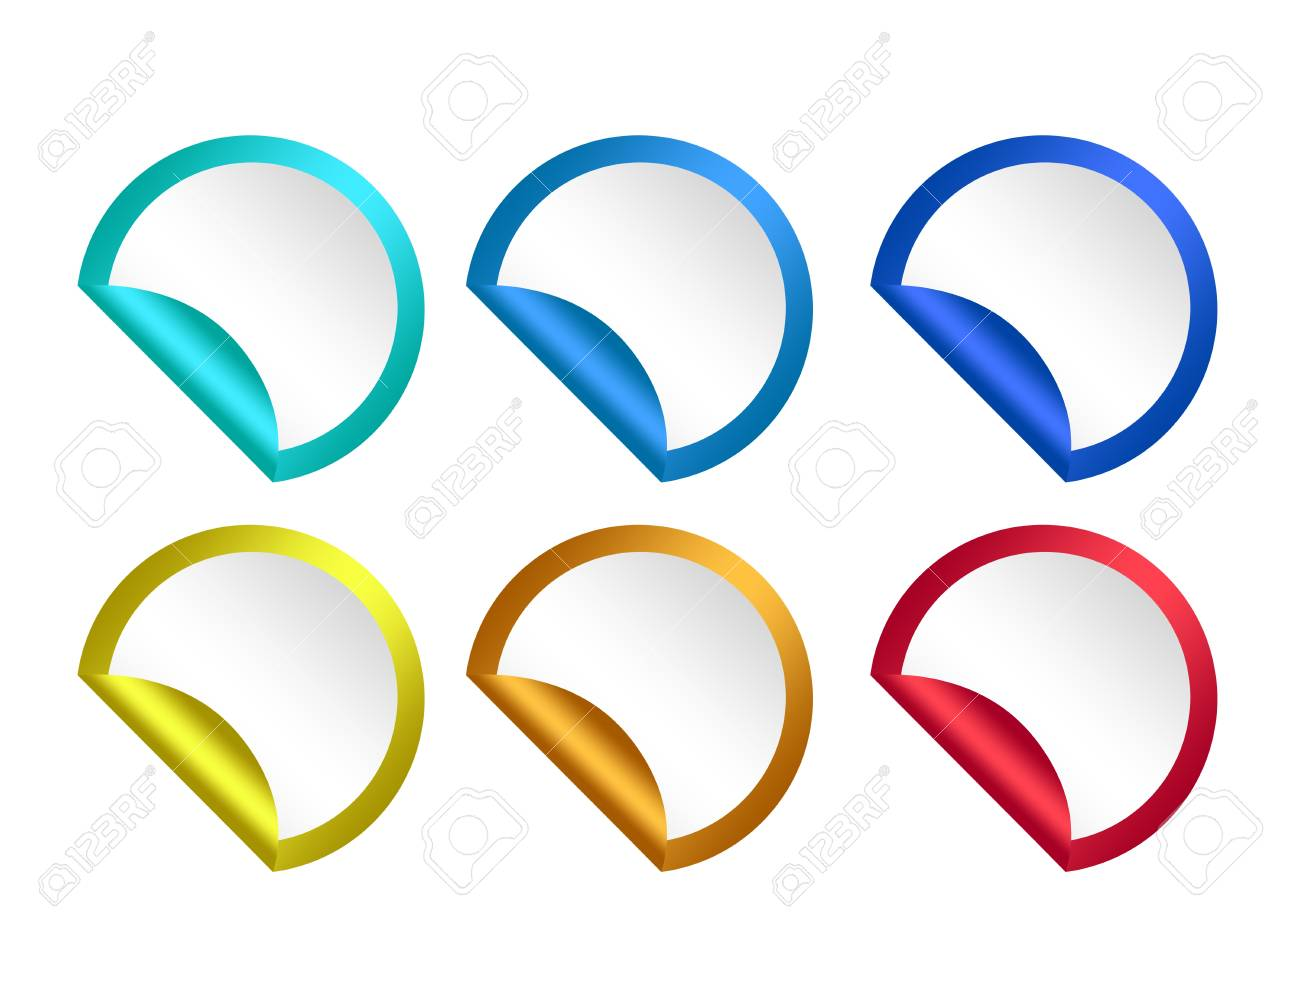 colored round stickers isolated over white background Stock Photo - 9853544